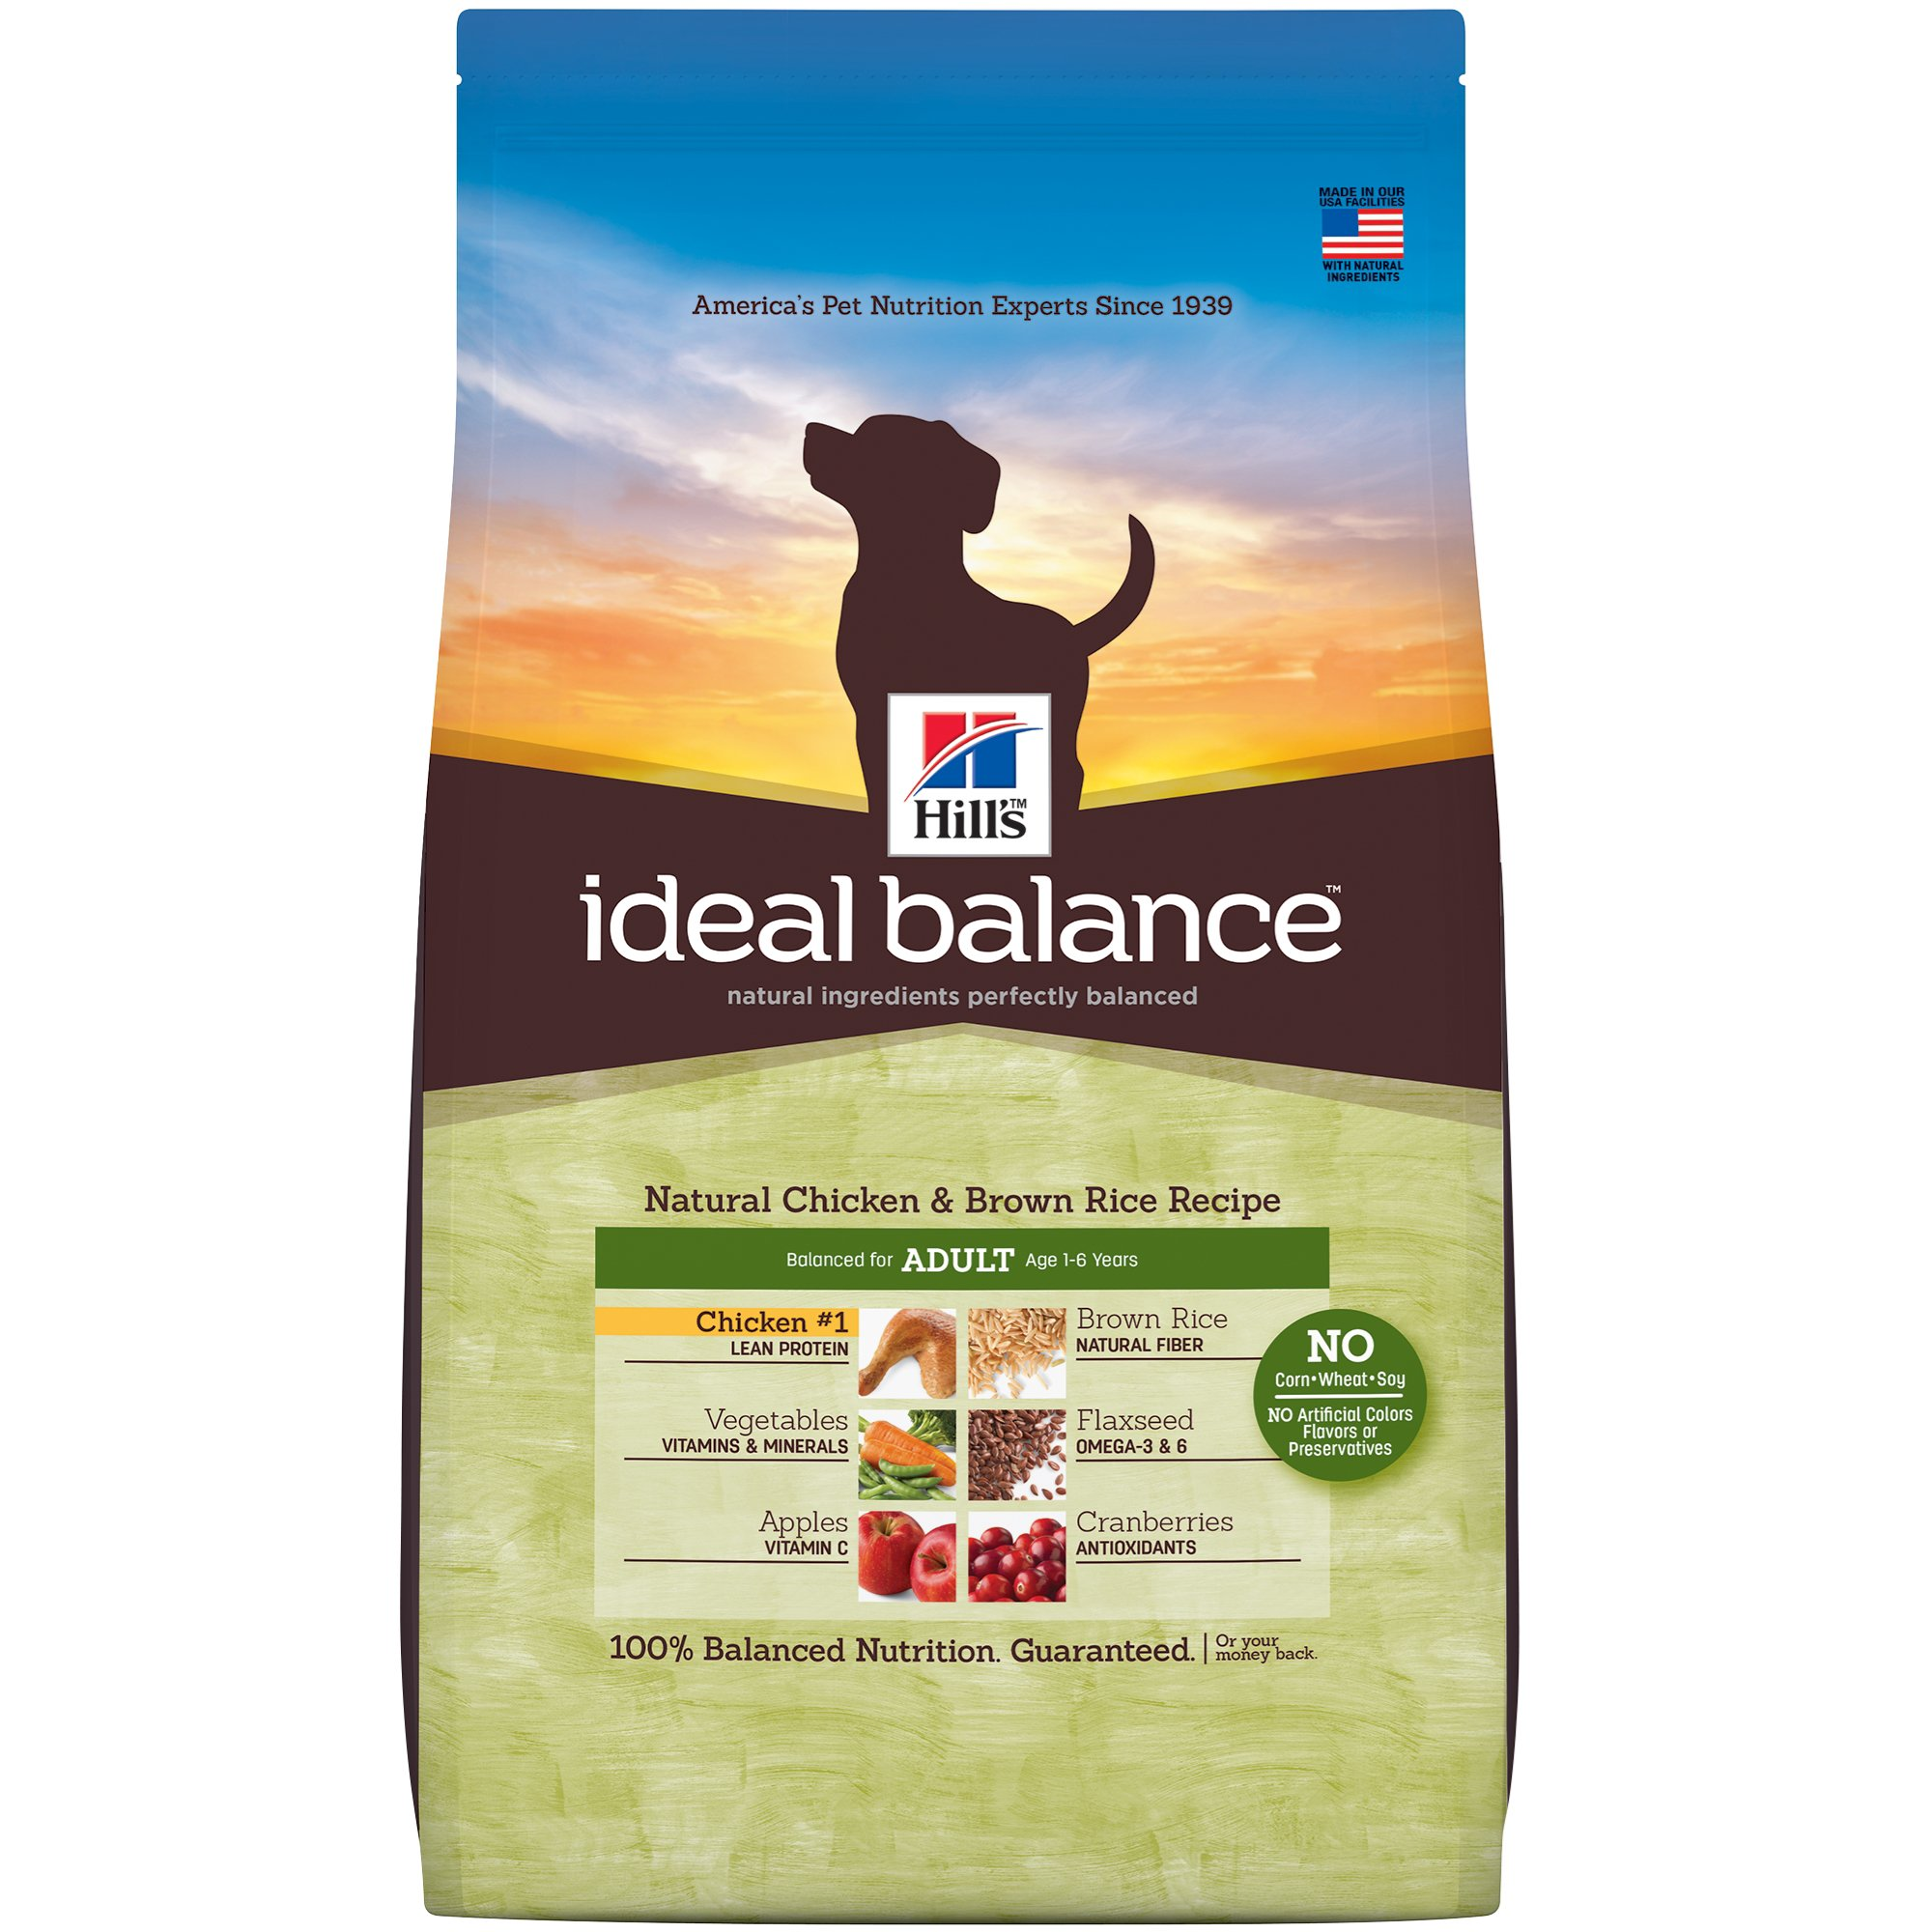 Hill's Ideal Balance Adult Natural Chicken & Brown Rice Recipe Dry Dog Food, 15 Lbs., Bag